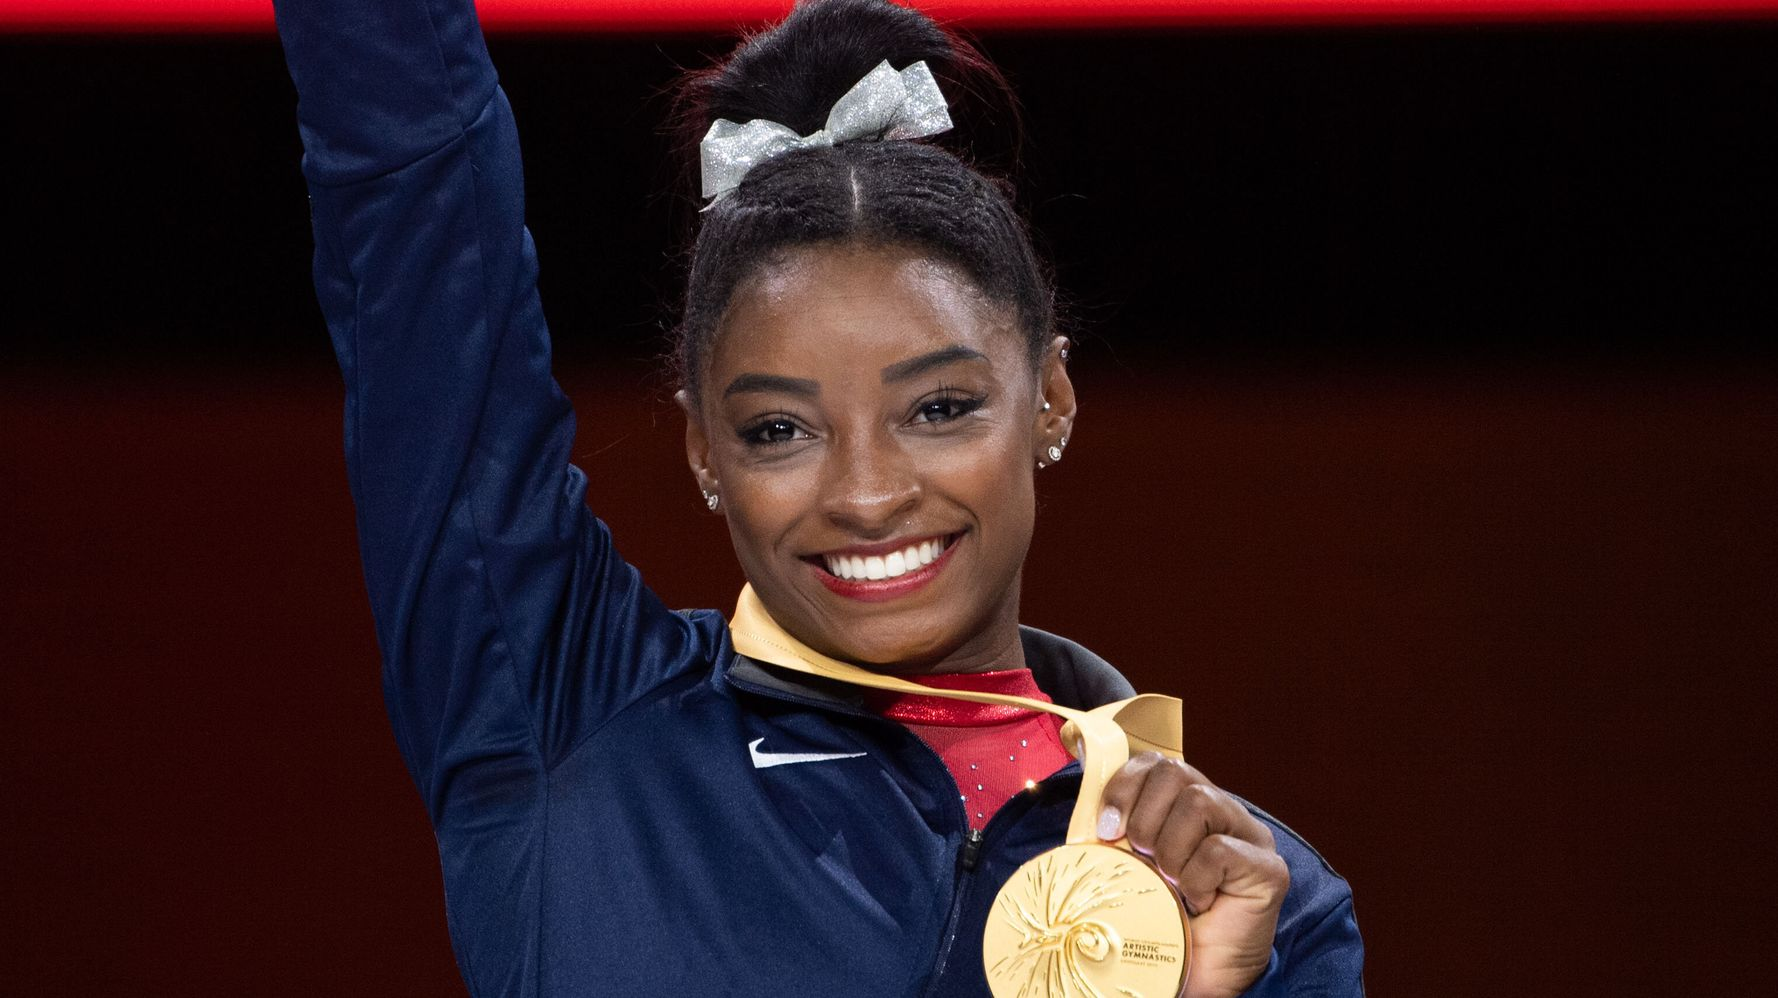 Westlake Legal Group 5daf3fc9210000a521ad395b Simone Biles Pens Sweet Tribute To Stacey Ervin Jr.: 'Man Of My Dreams'